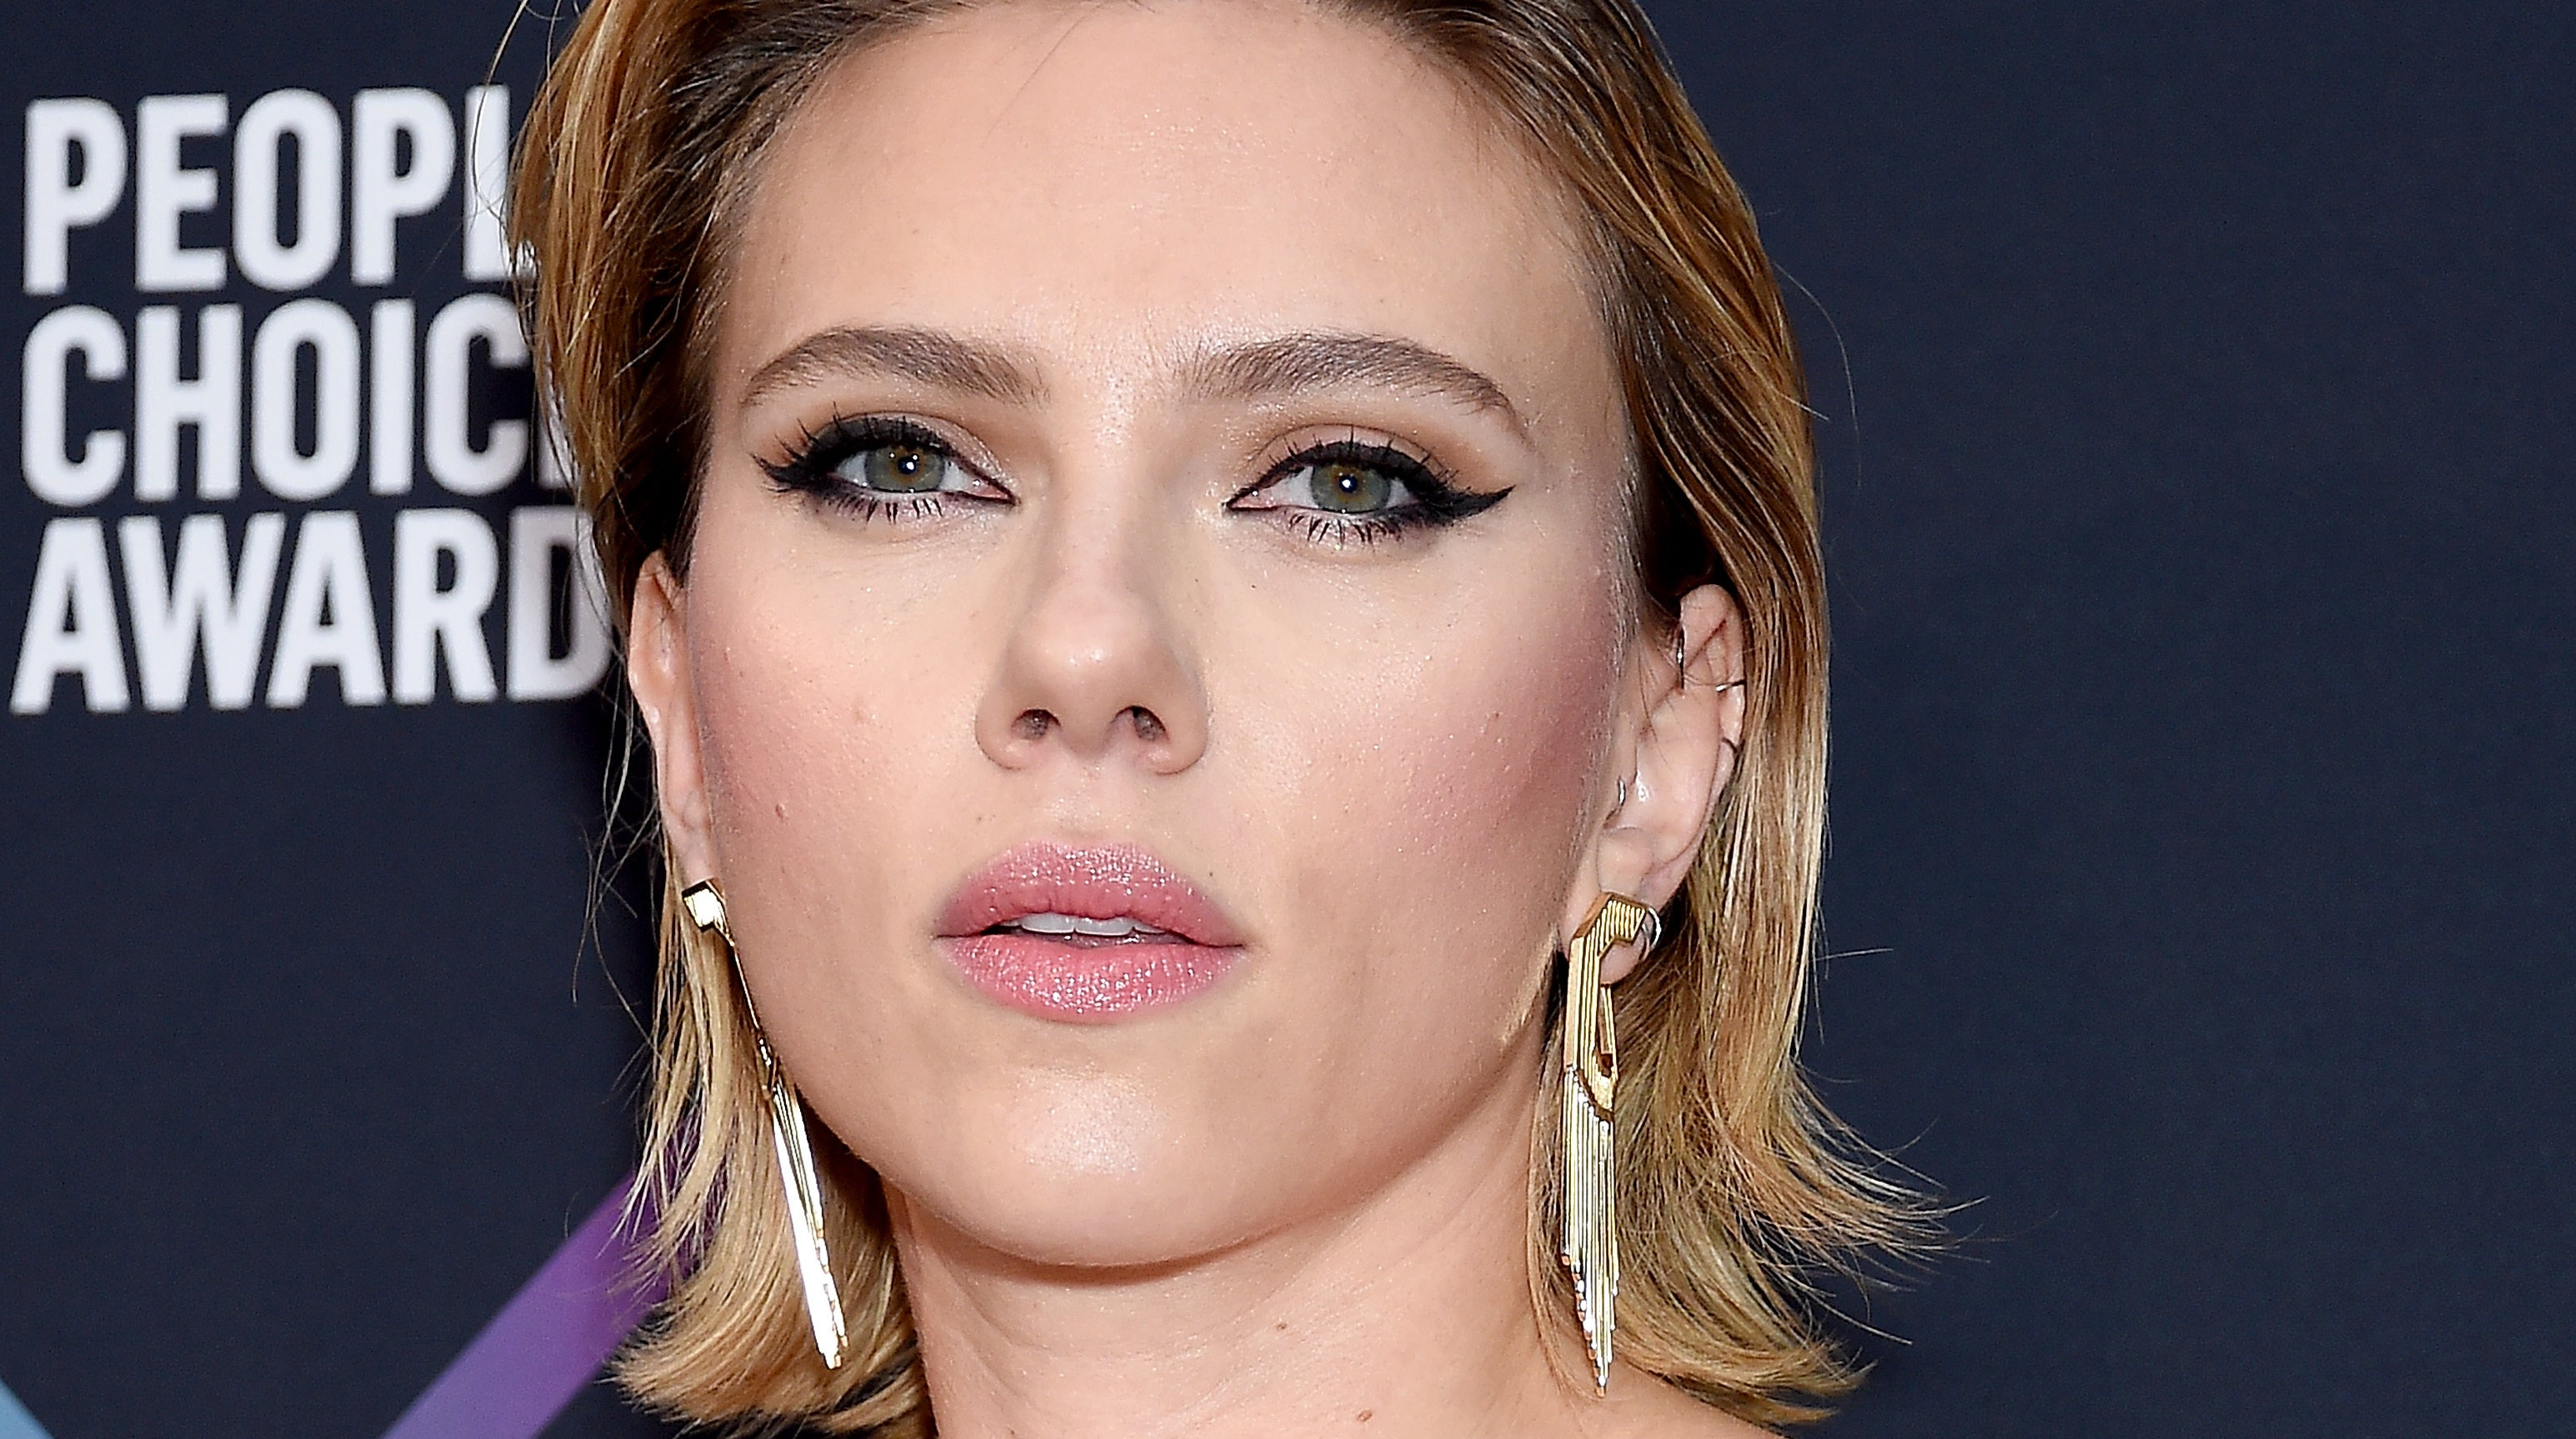 Scarlett Johansson On Deepfakes: 'The Internet Is A Vast Wormhole Of Darkness That Eats Itself'